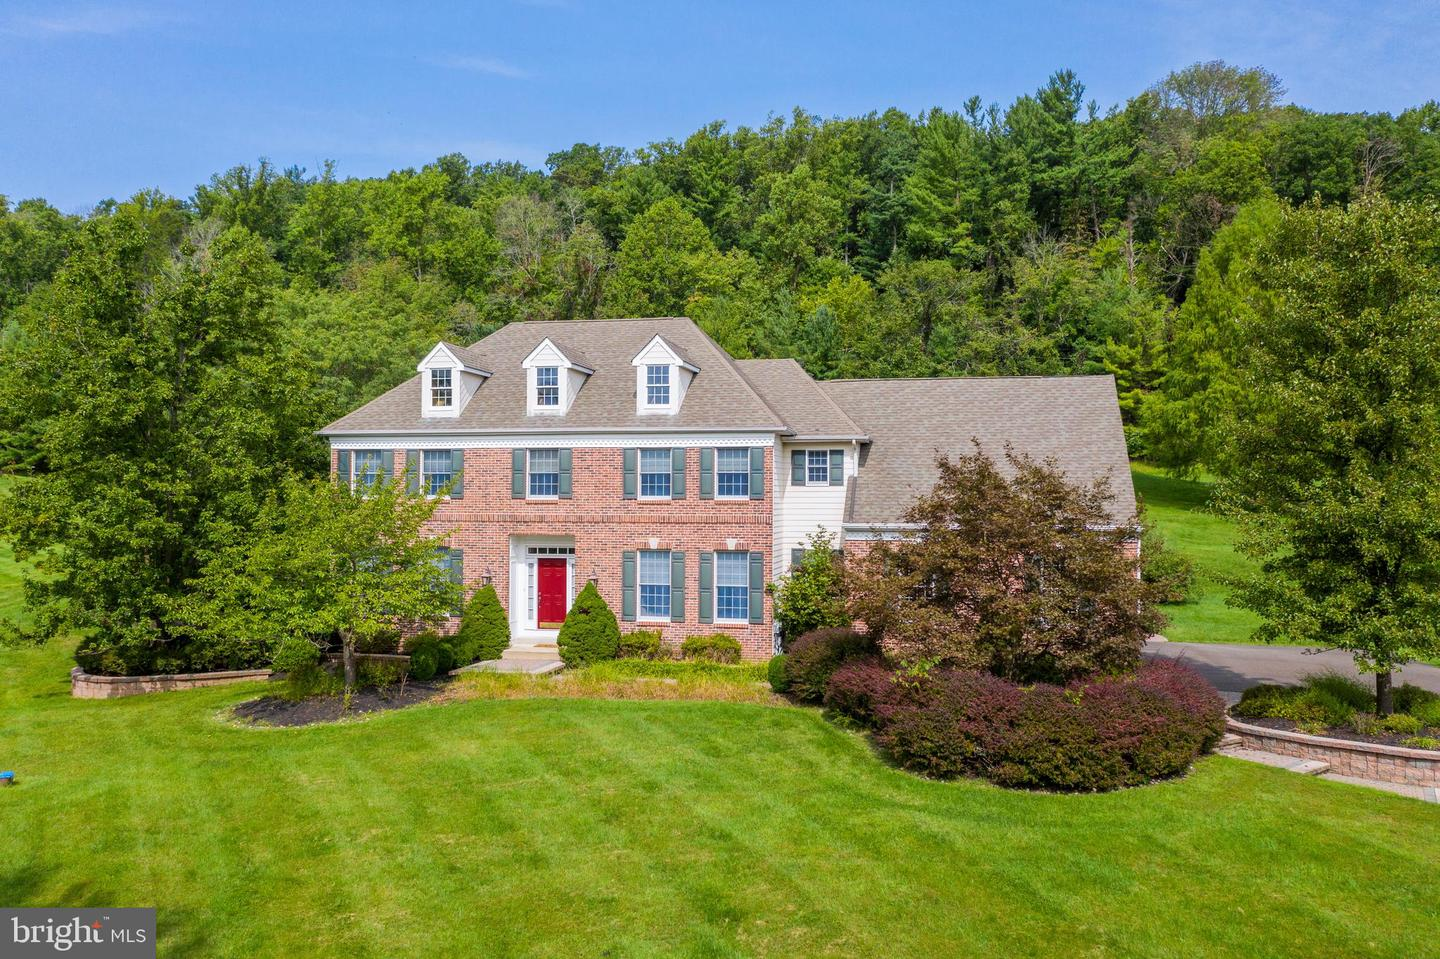 43 BOWMANS DR, NEW HOPE, PA